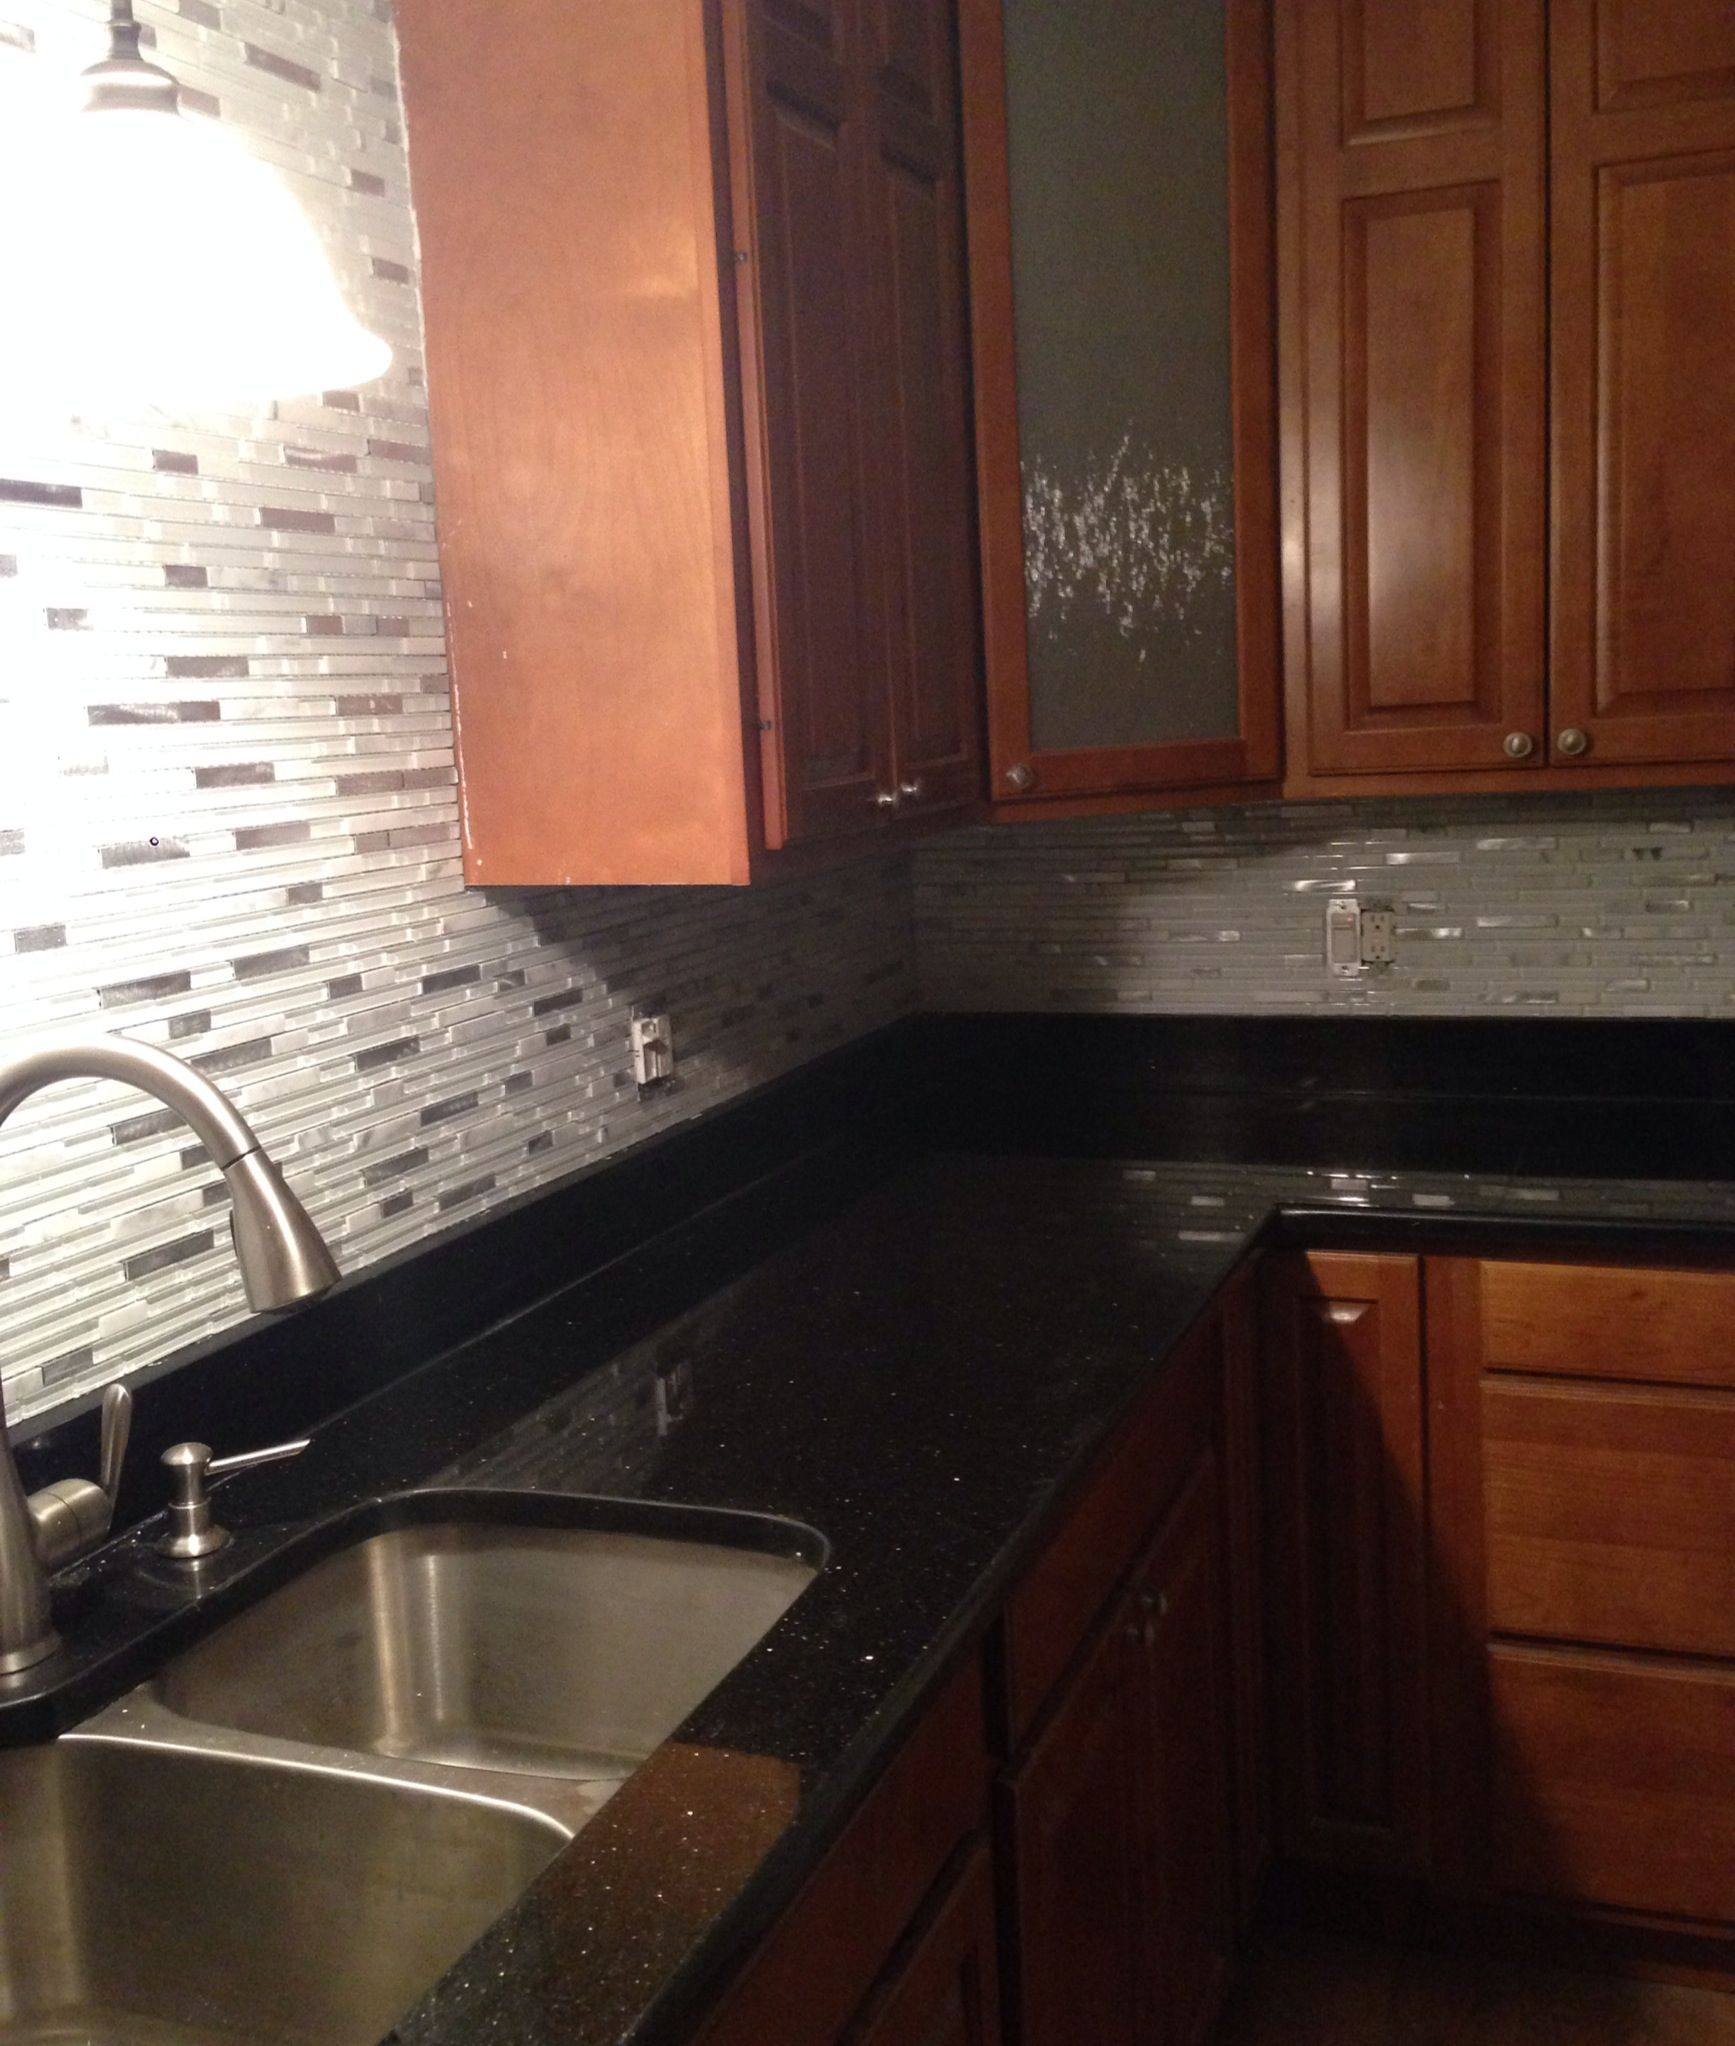 Kitchen Whitehorse Backsplash Black Granite Top With Gold Flakes Backsplash Black Granite Updated Kitchen Kitchen